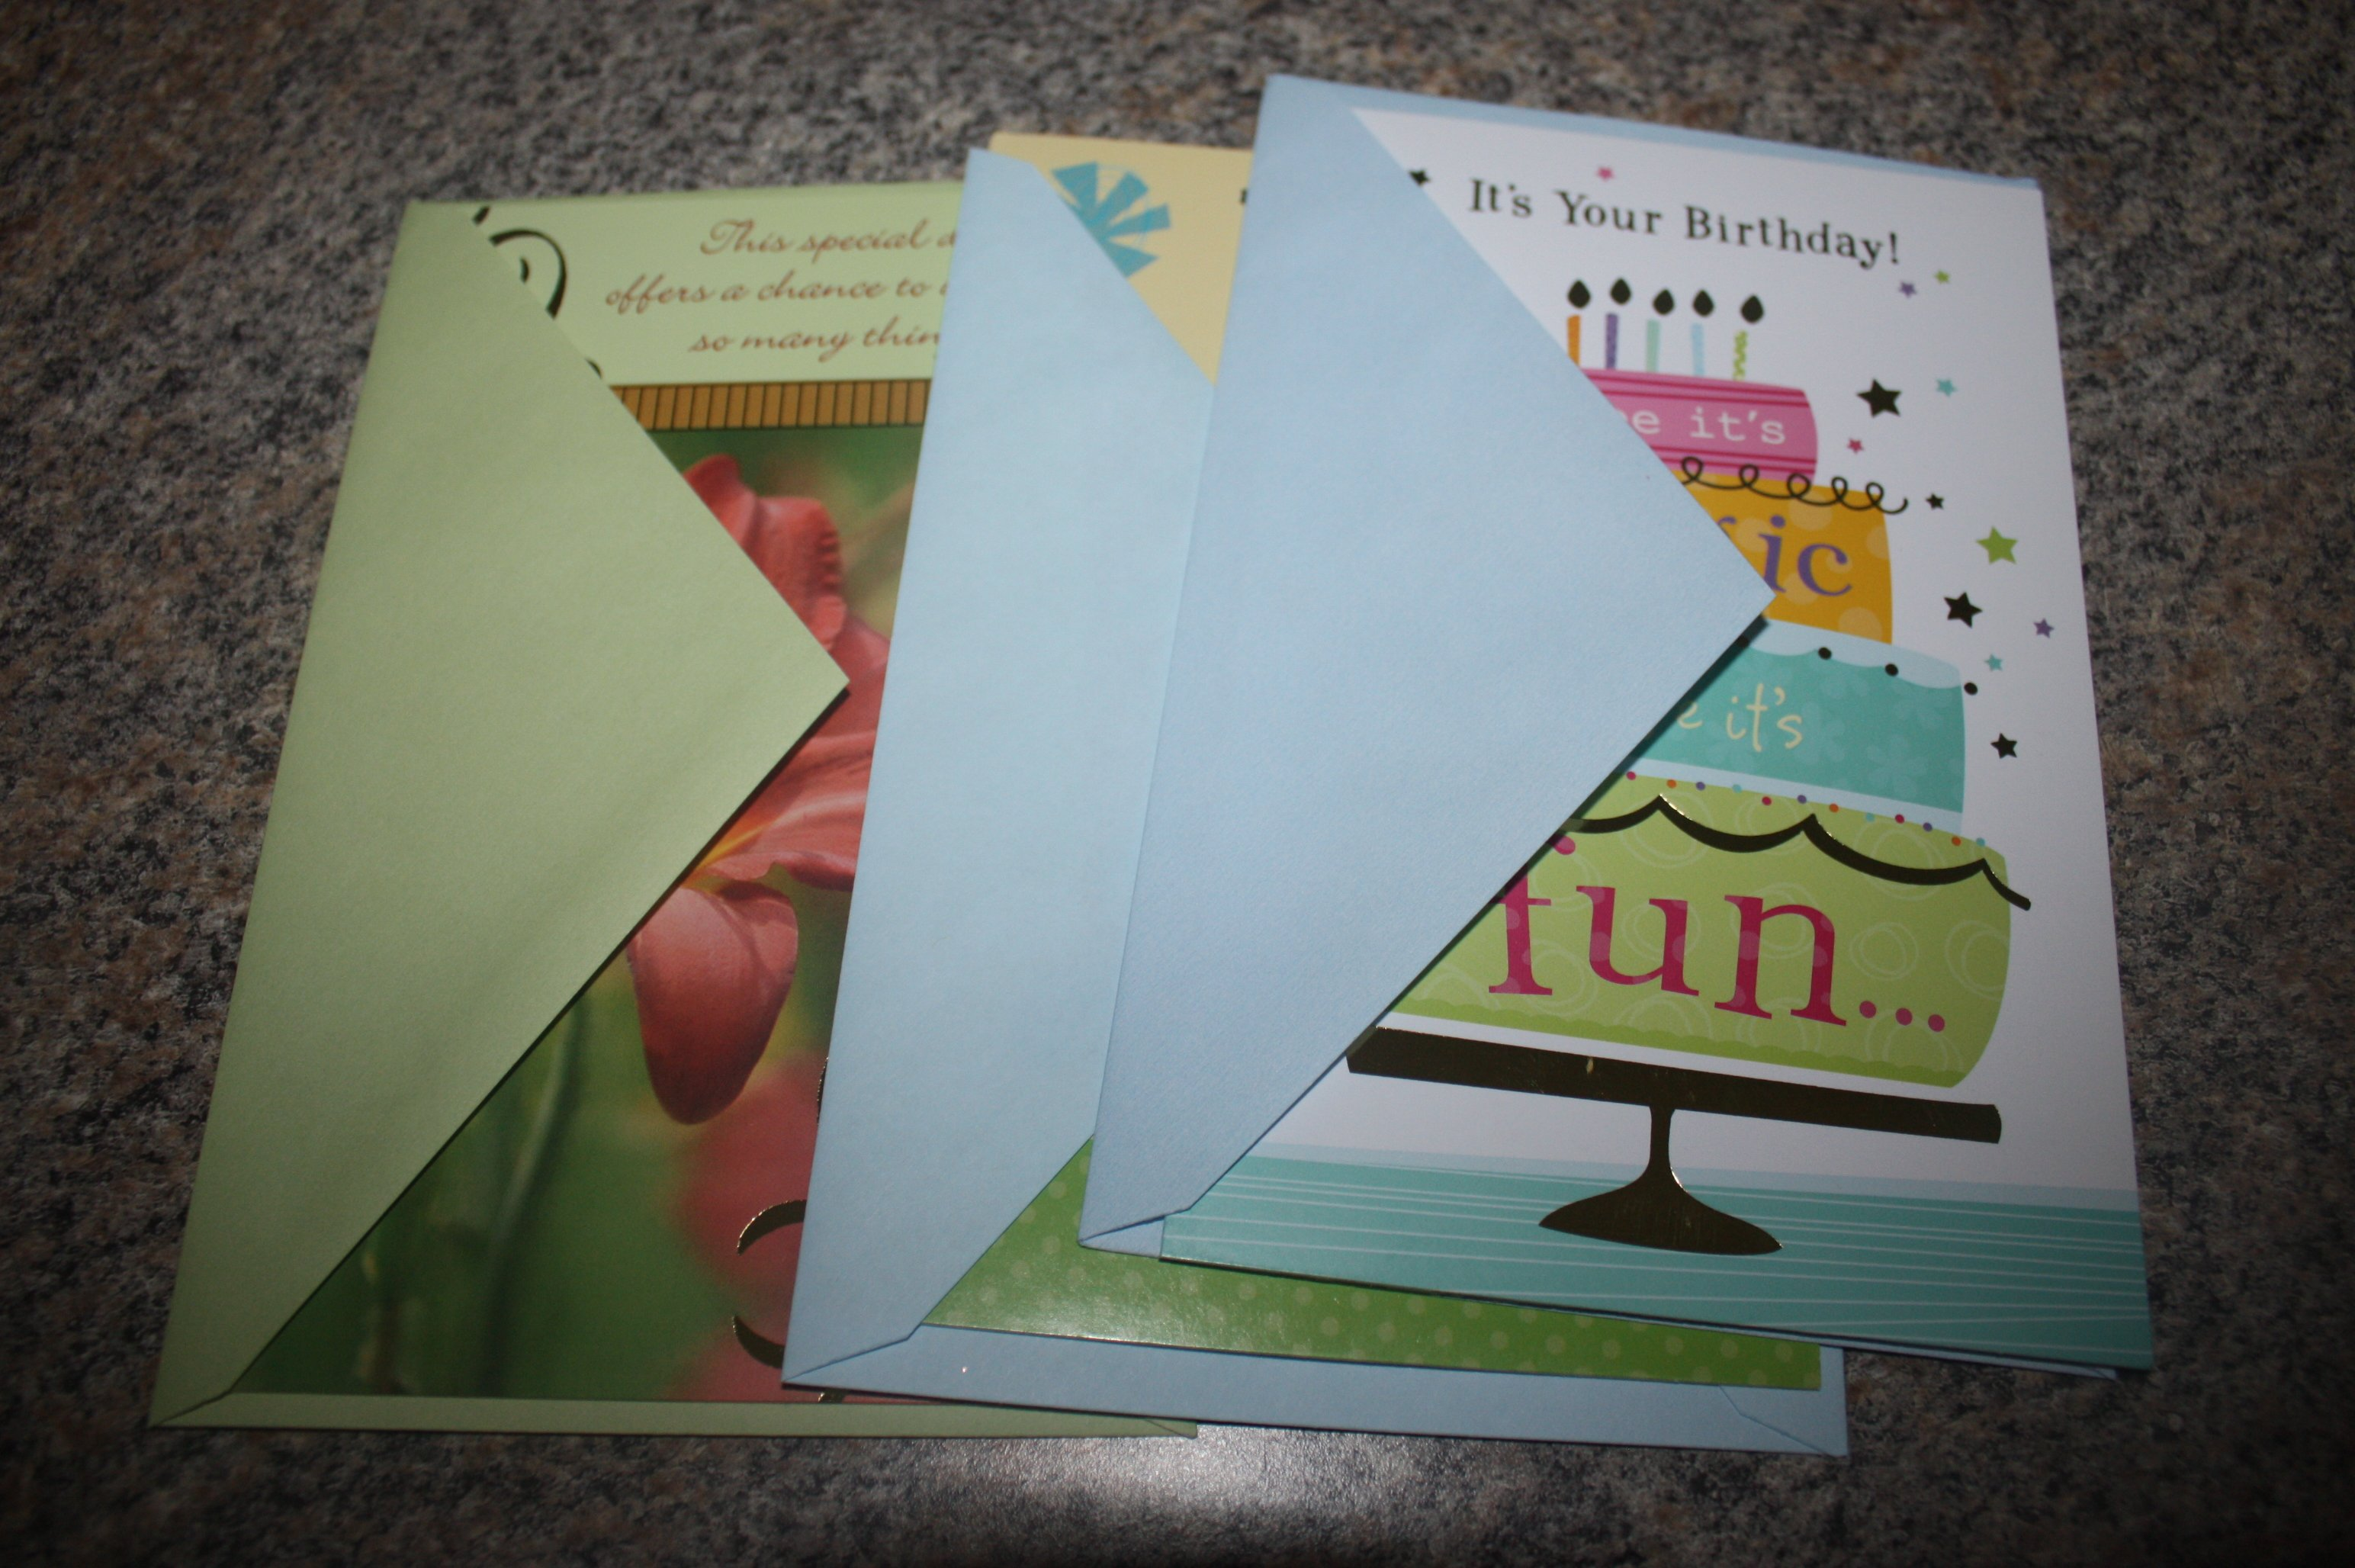 I Scored This Deal Week At CVS Buy 3 American Greetings Cards Get ECB Look For The That Are 99 And Pay 297 Making Them